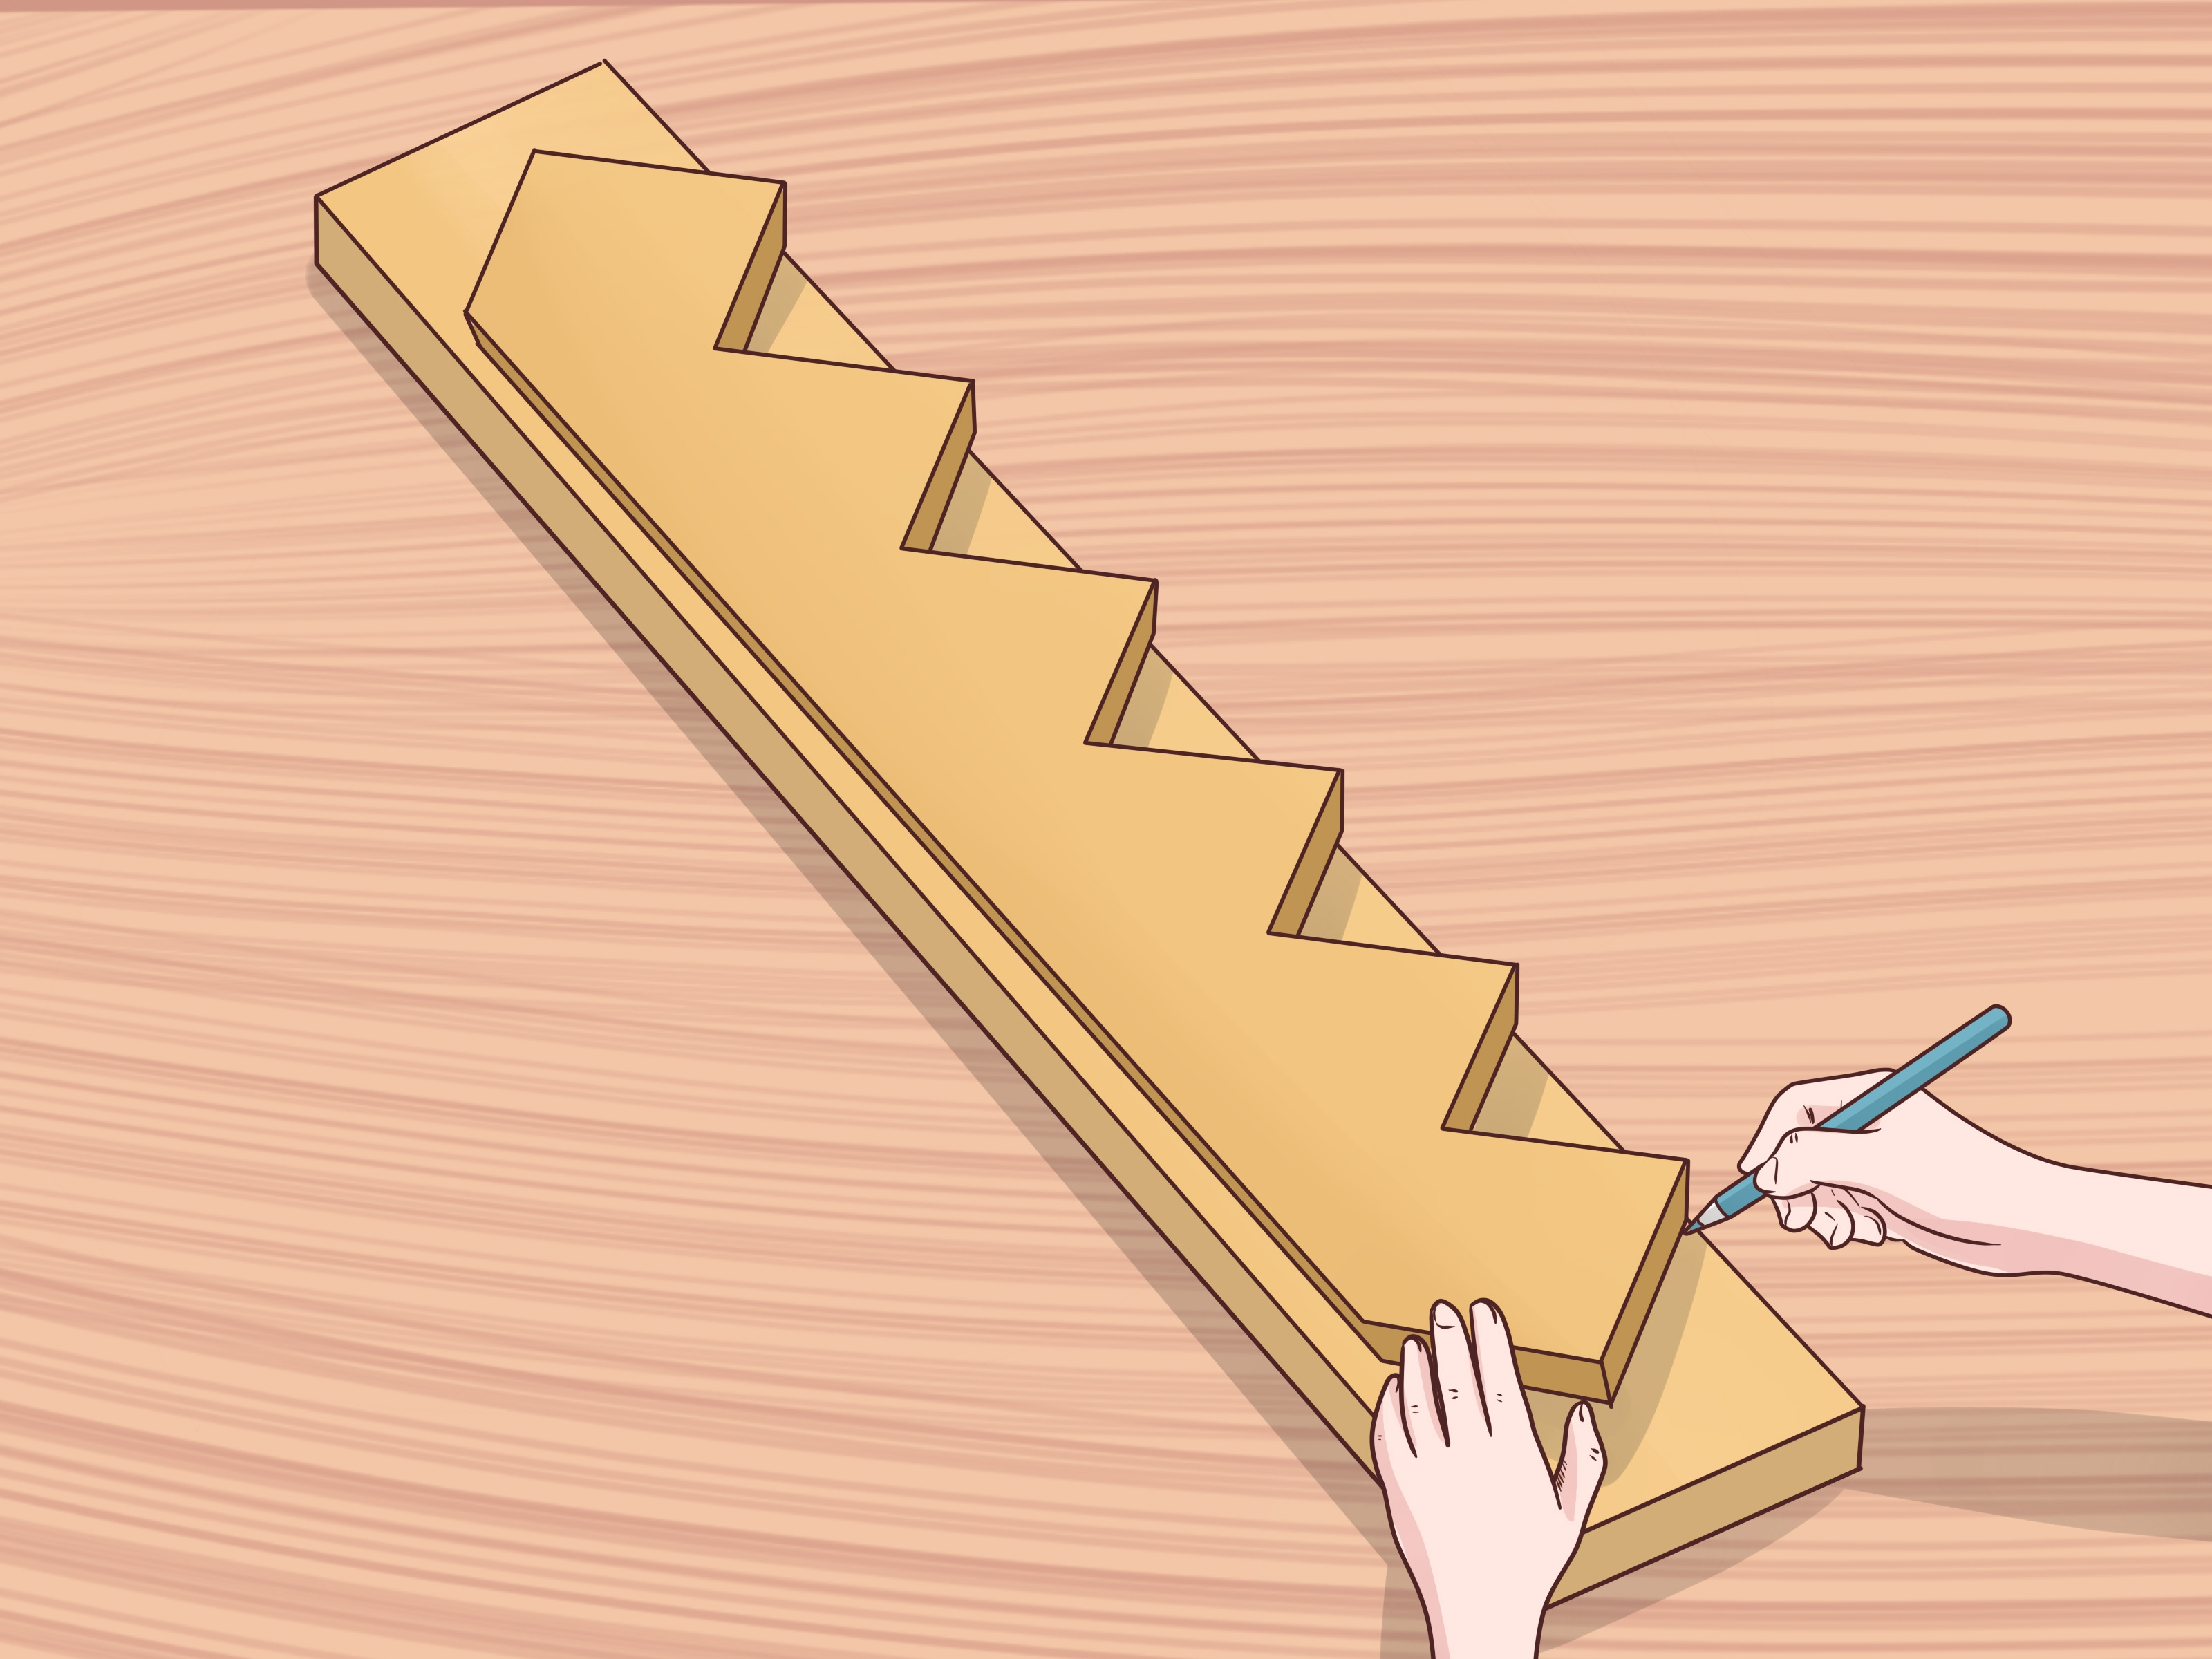 How To Cut Stair Stringers 15 Steps With Pictures Wikihow   Best Wood For Stair Stringers   Framing Square   Stair Landing   Pine Stair   Stair Tread   Deck